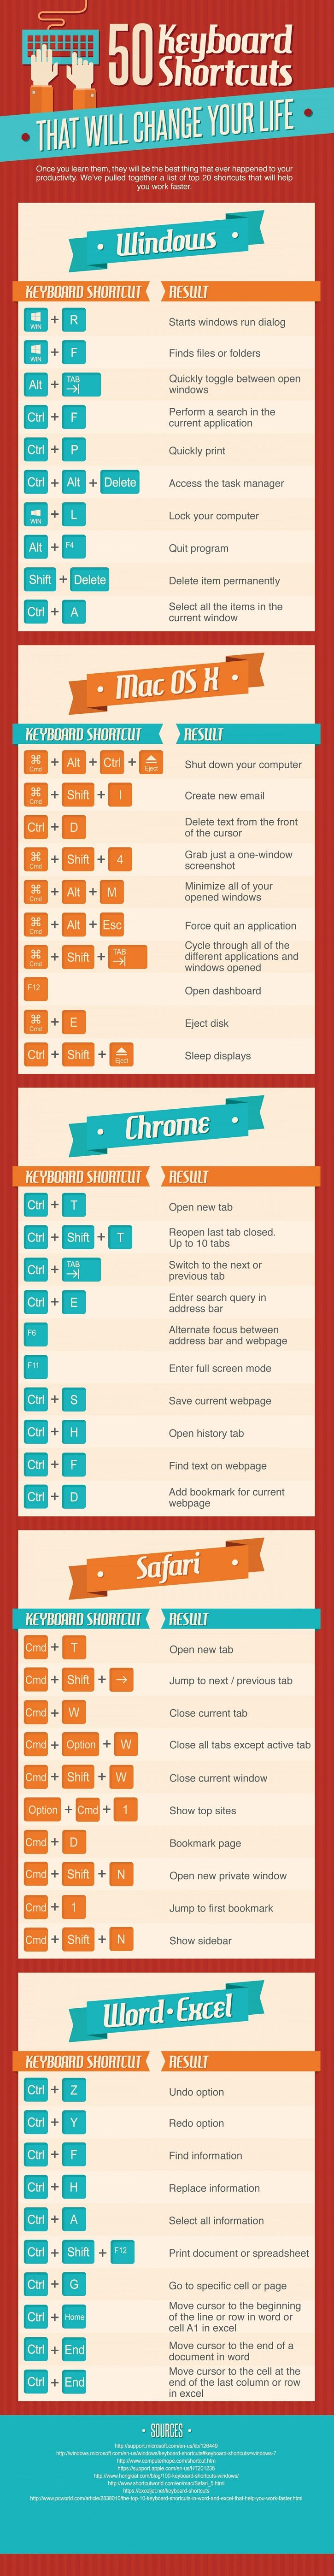 How to delete scrapbook photos google+ - 50 Keyboard Shortcuts To Make Your Life Easier Computers Internet Babamail